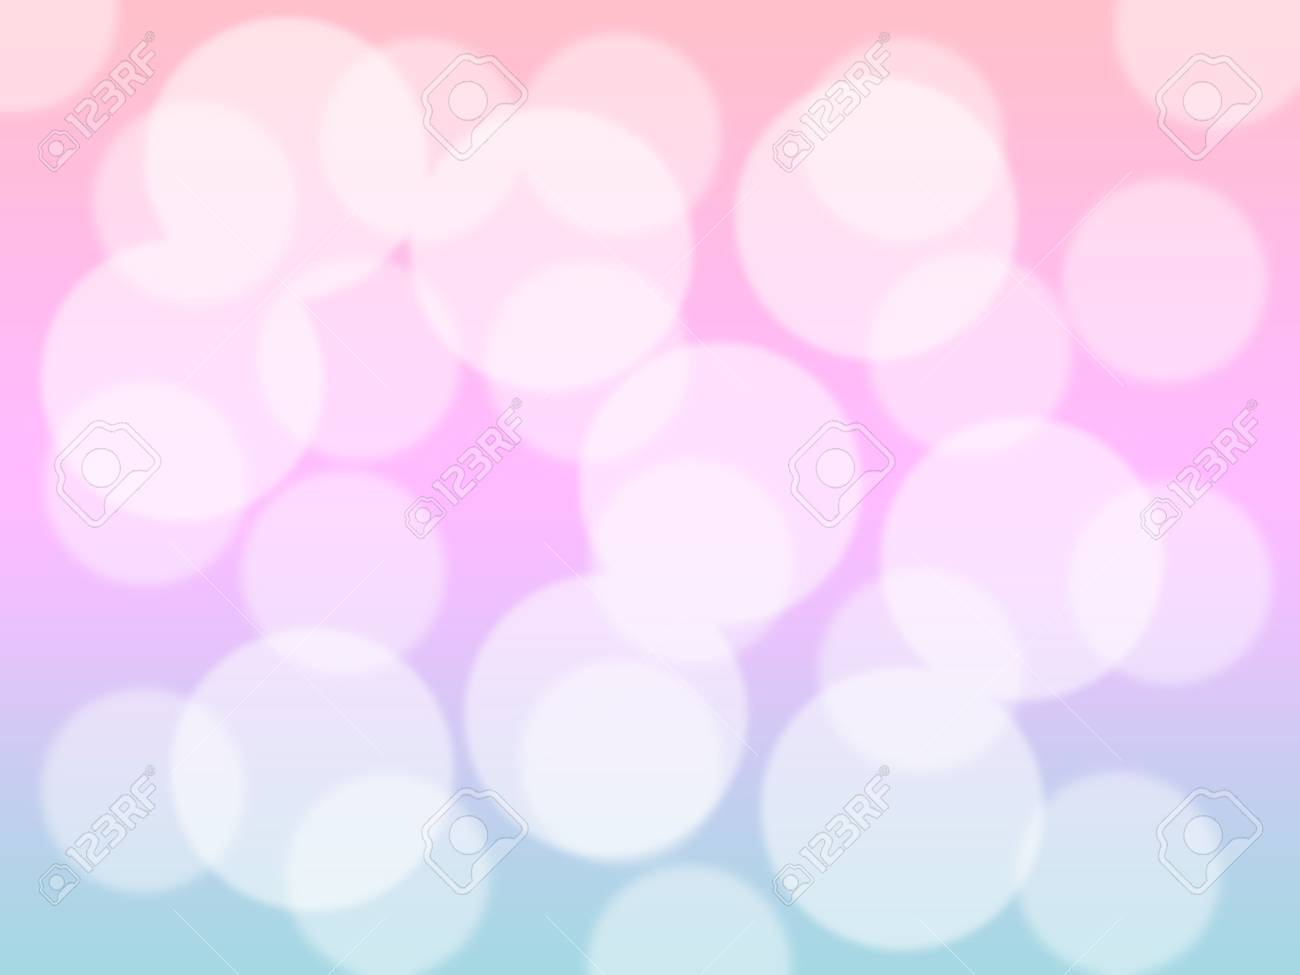 Soft Sweet Blurred Pastel Color Background With Bokeh Abstract